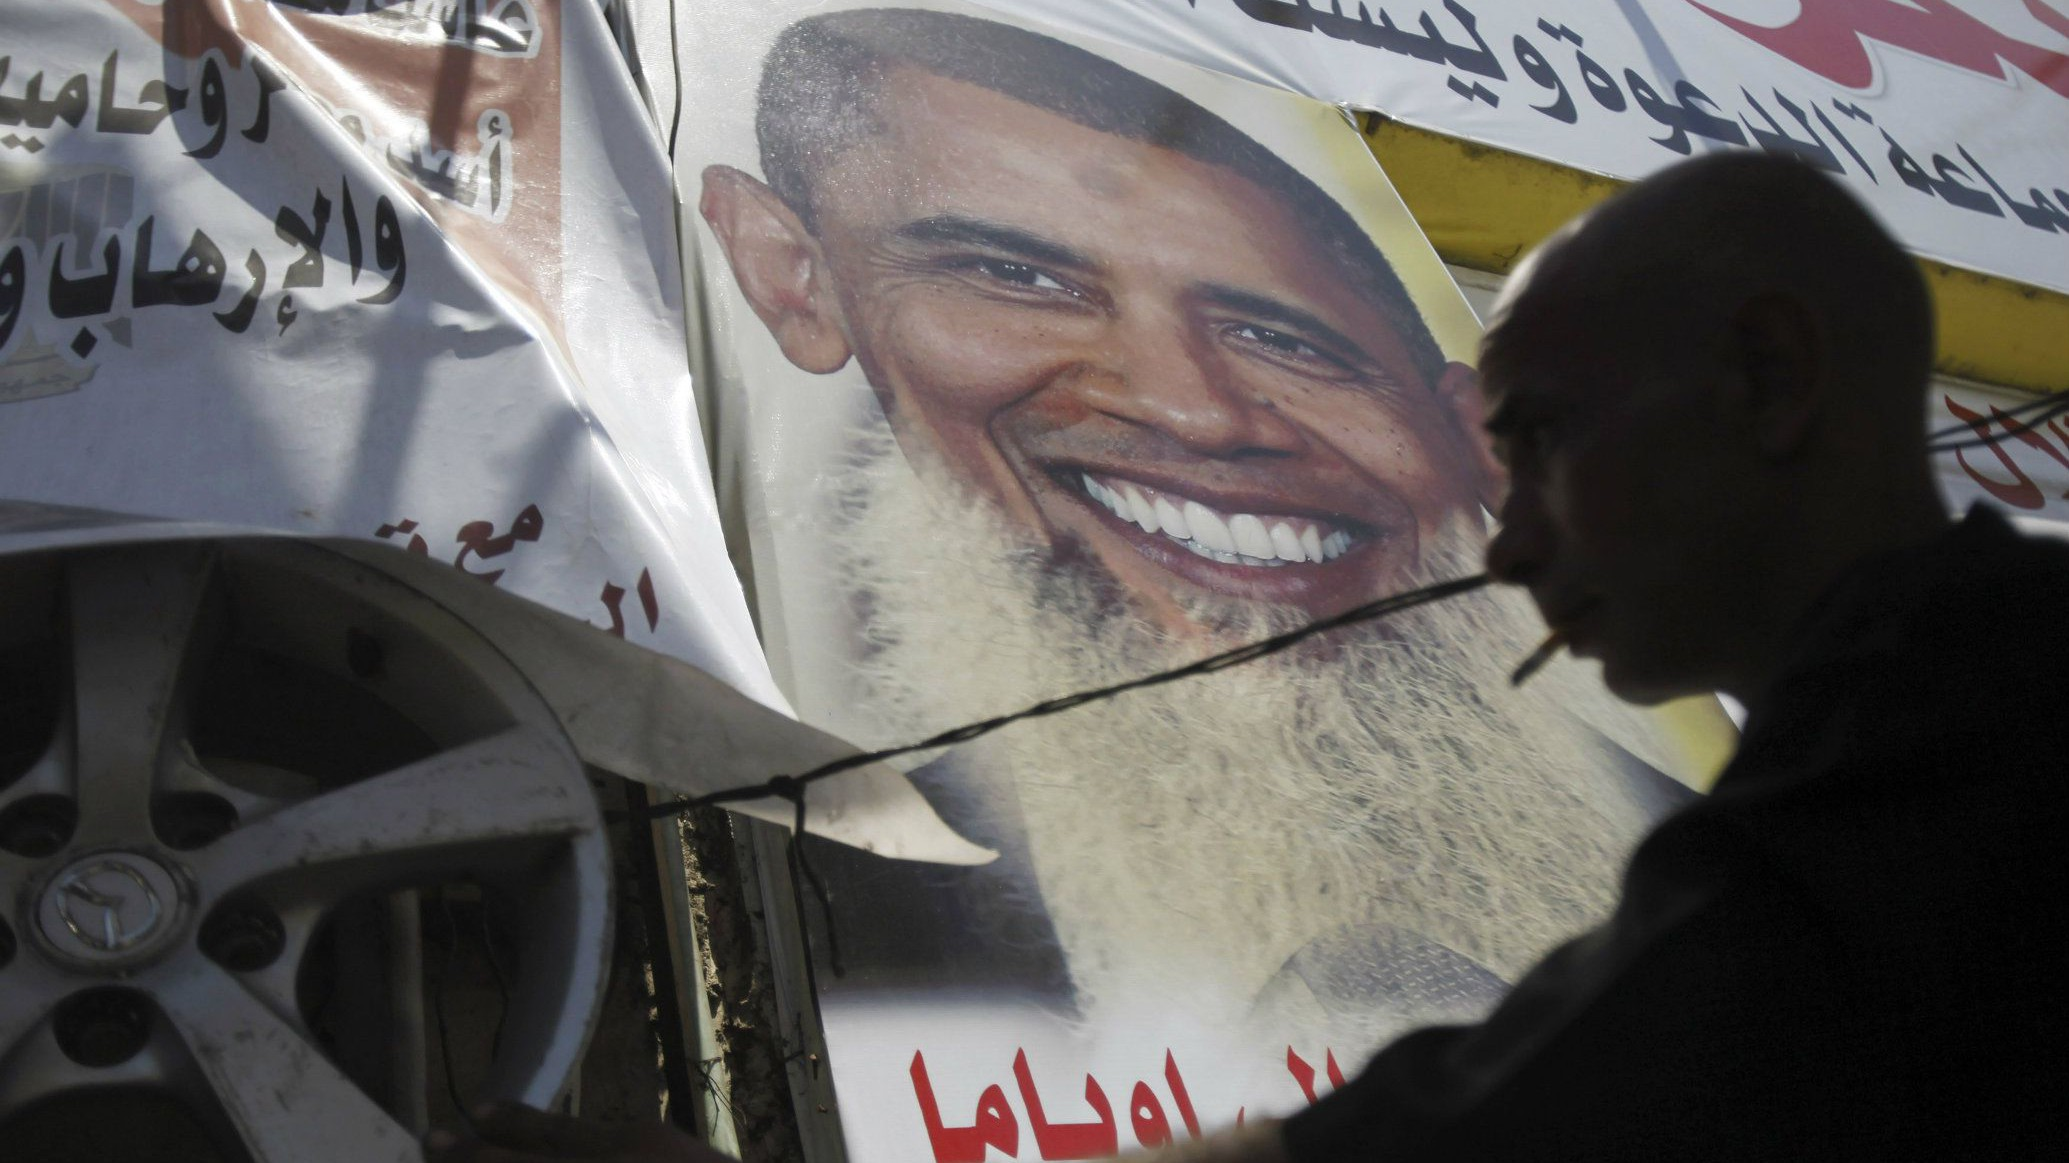 "Salah Abdel Moneim, 40, an anti-Mursi supporter of Egypt's army works at his shop with a poster depicting U.S. president Barack Obama with a beard, in downtown Cairo August 7, 2013. Egypt's presidency said on Wednesday that diplomatic efforts to end the country's political turmoil had failed and warned that the Muslim Brotherhood of ousted President Mohamed Mursi would be held responsible for the consequences. In a statement, interim President Adly Mansour's office said the period of international efforts that began more than 10 days ago had ""ended today"". REUTERS/Amr Abdallah Dalsh"